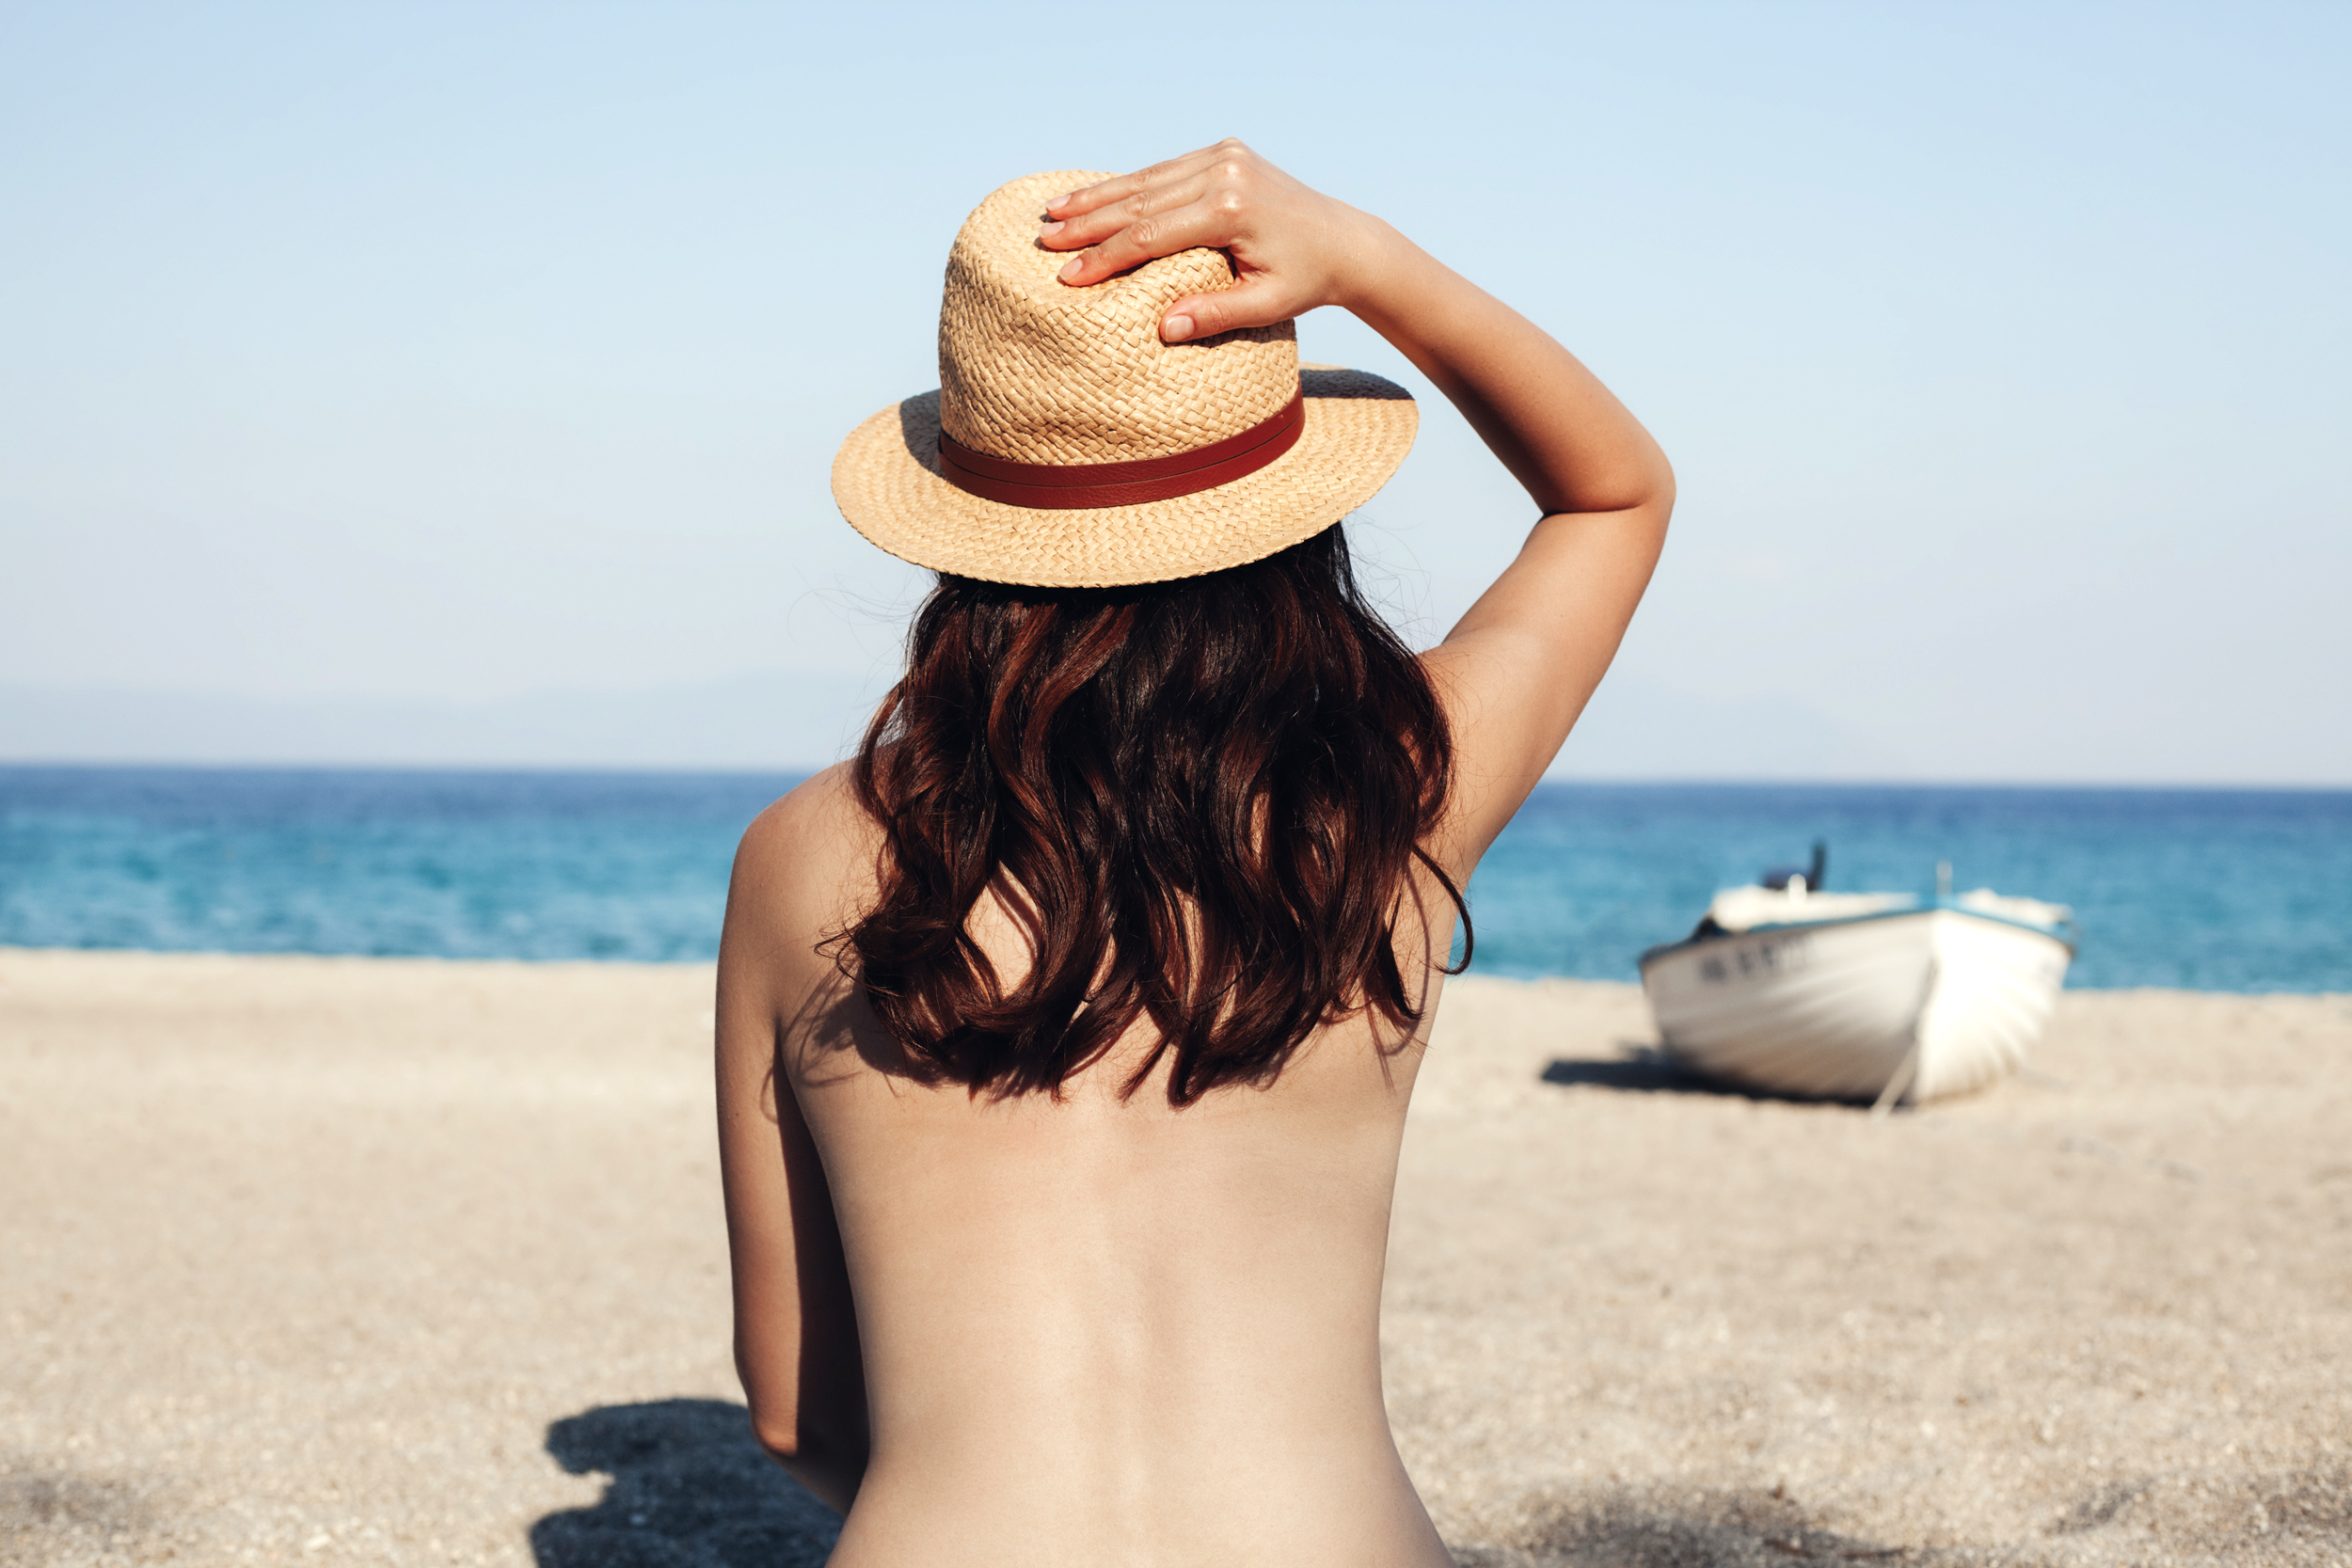 Would you ever vacation nude? 'Nacations' are the latest getaway trend